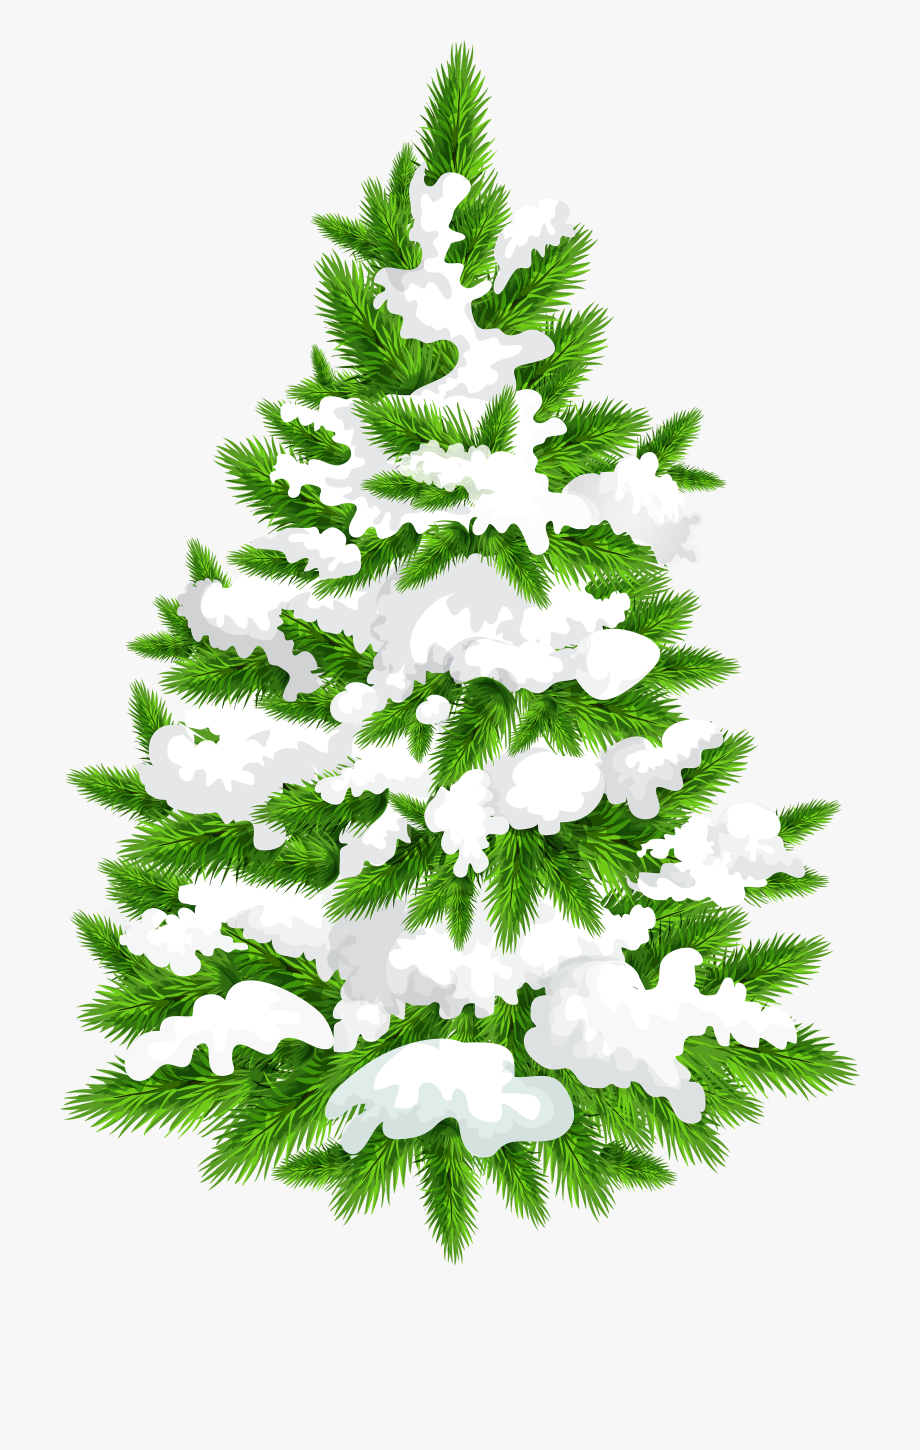 Image Library Library Snowy Tree Png Clip.